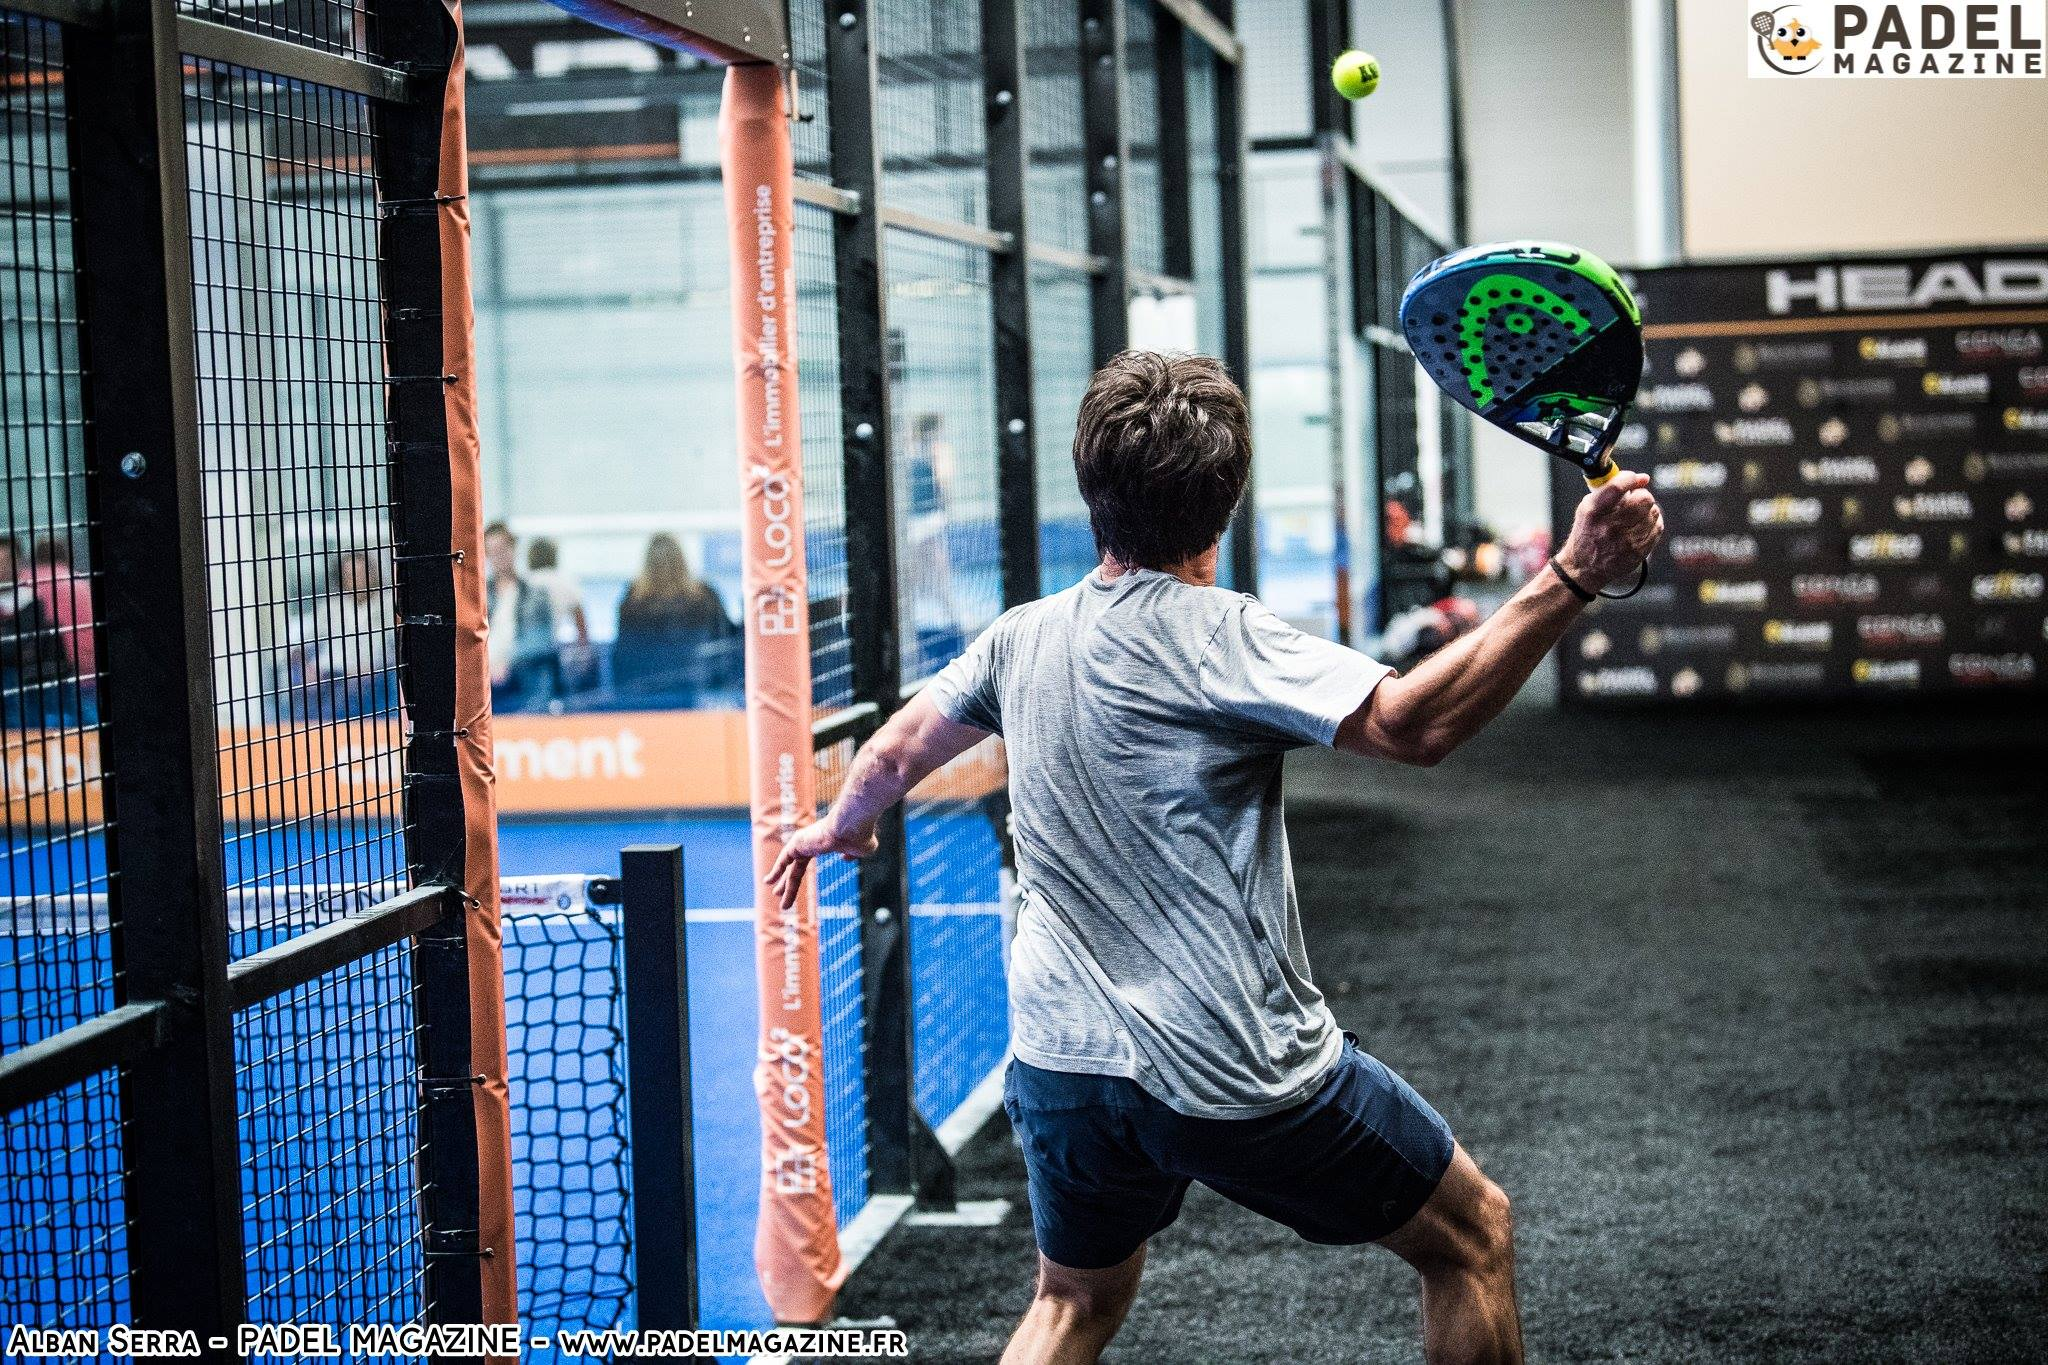 7 and 8 padel program September 2019